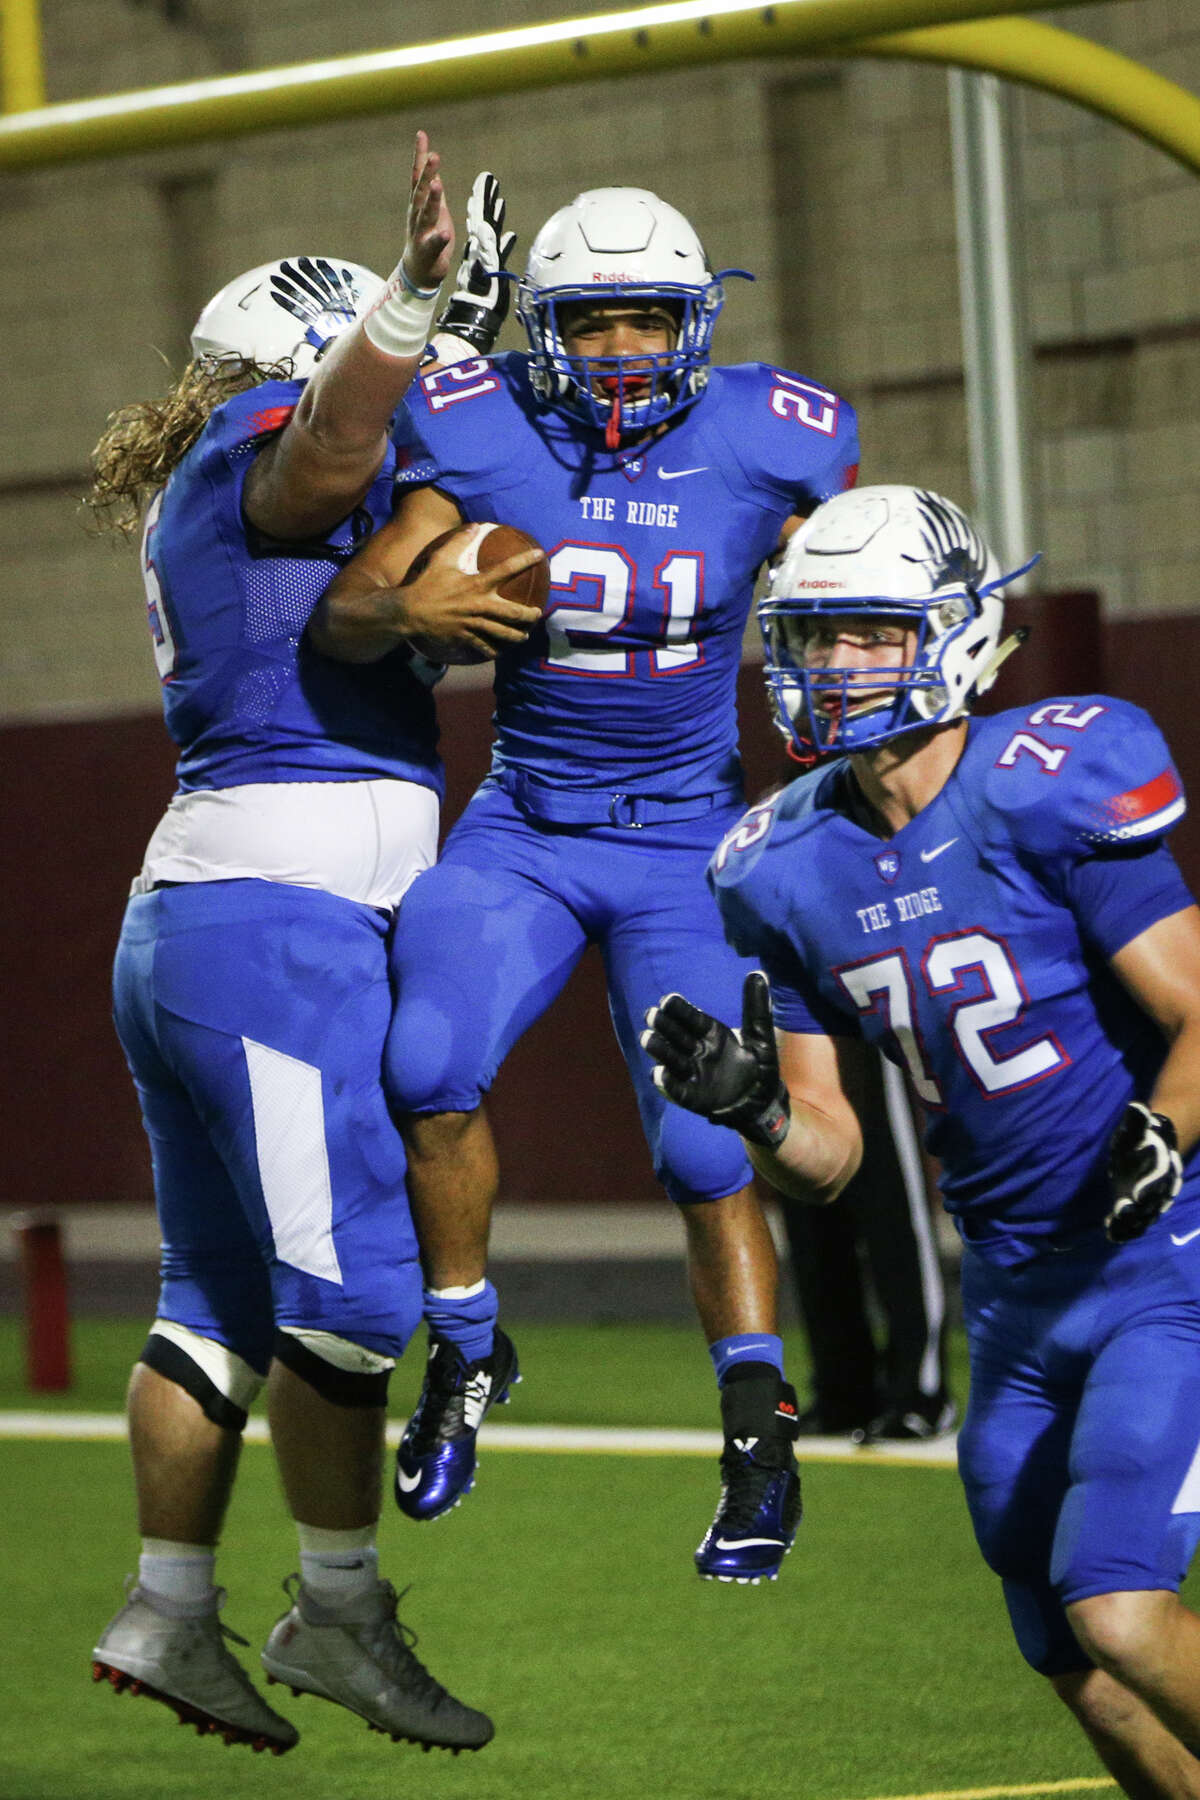 Oak Ridge's Jimmie Moore (21) celebrates with teammates after scoring a touchdown during the varsity football game against Conroe on Friday, Sept. 16, 2016, at Woodforest Stadium in The Woodlands, Texas.